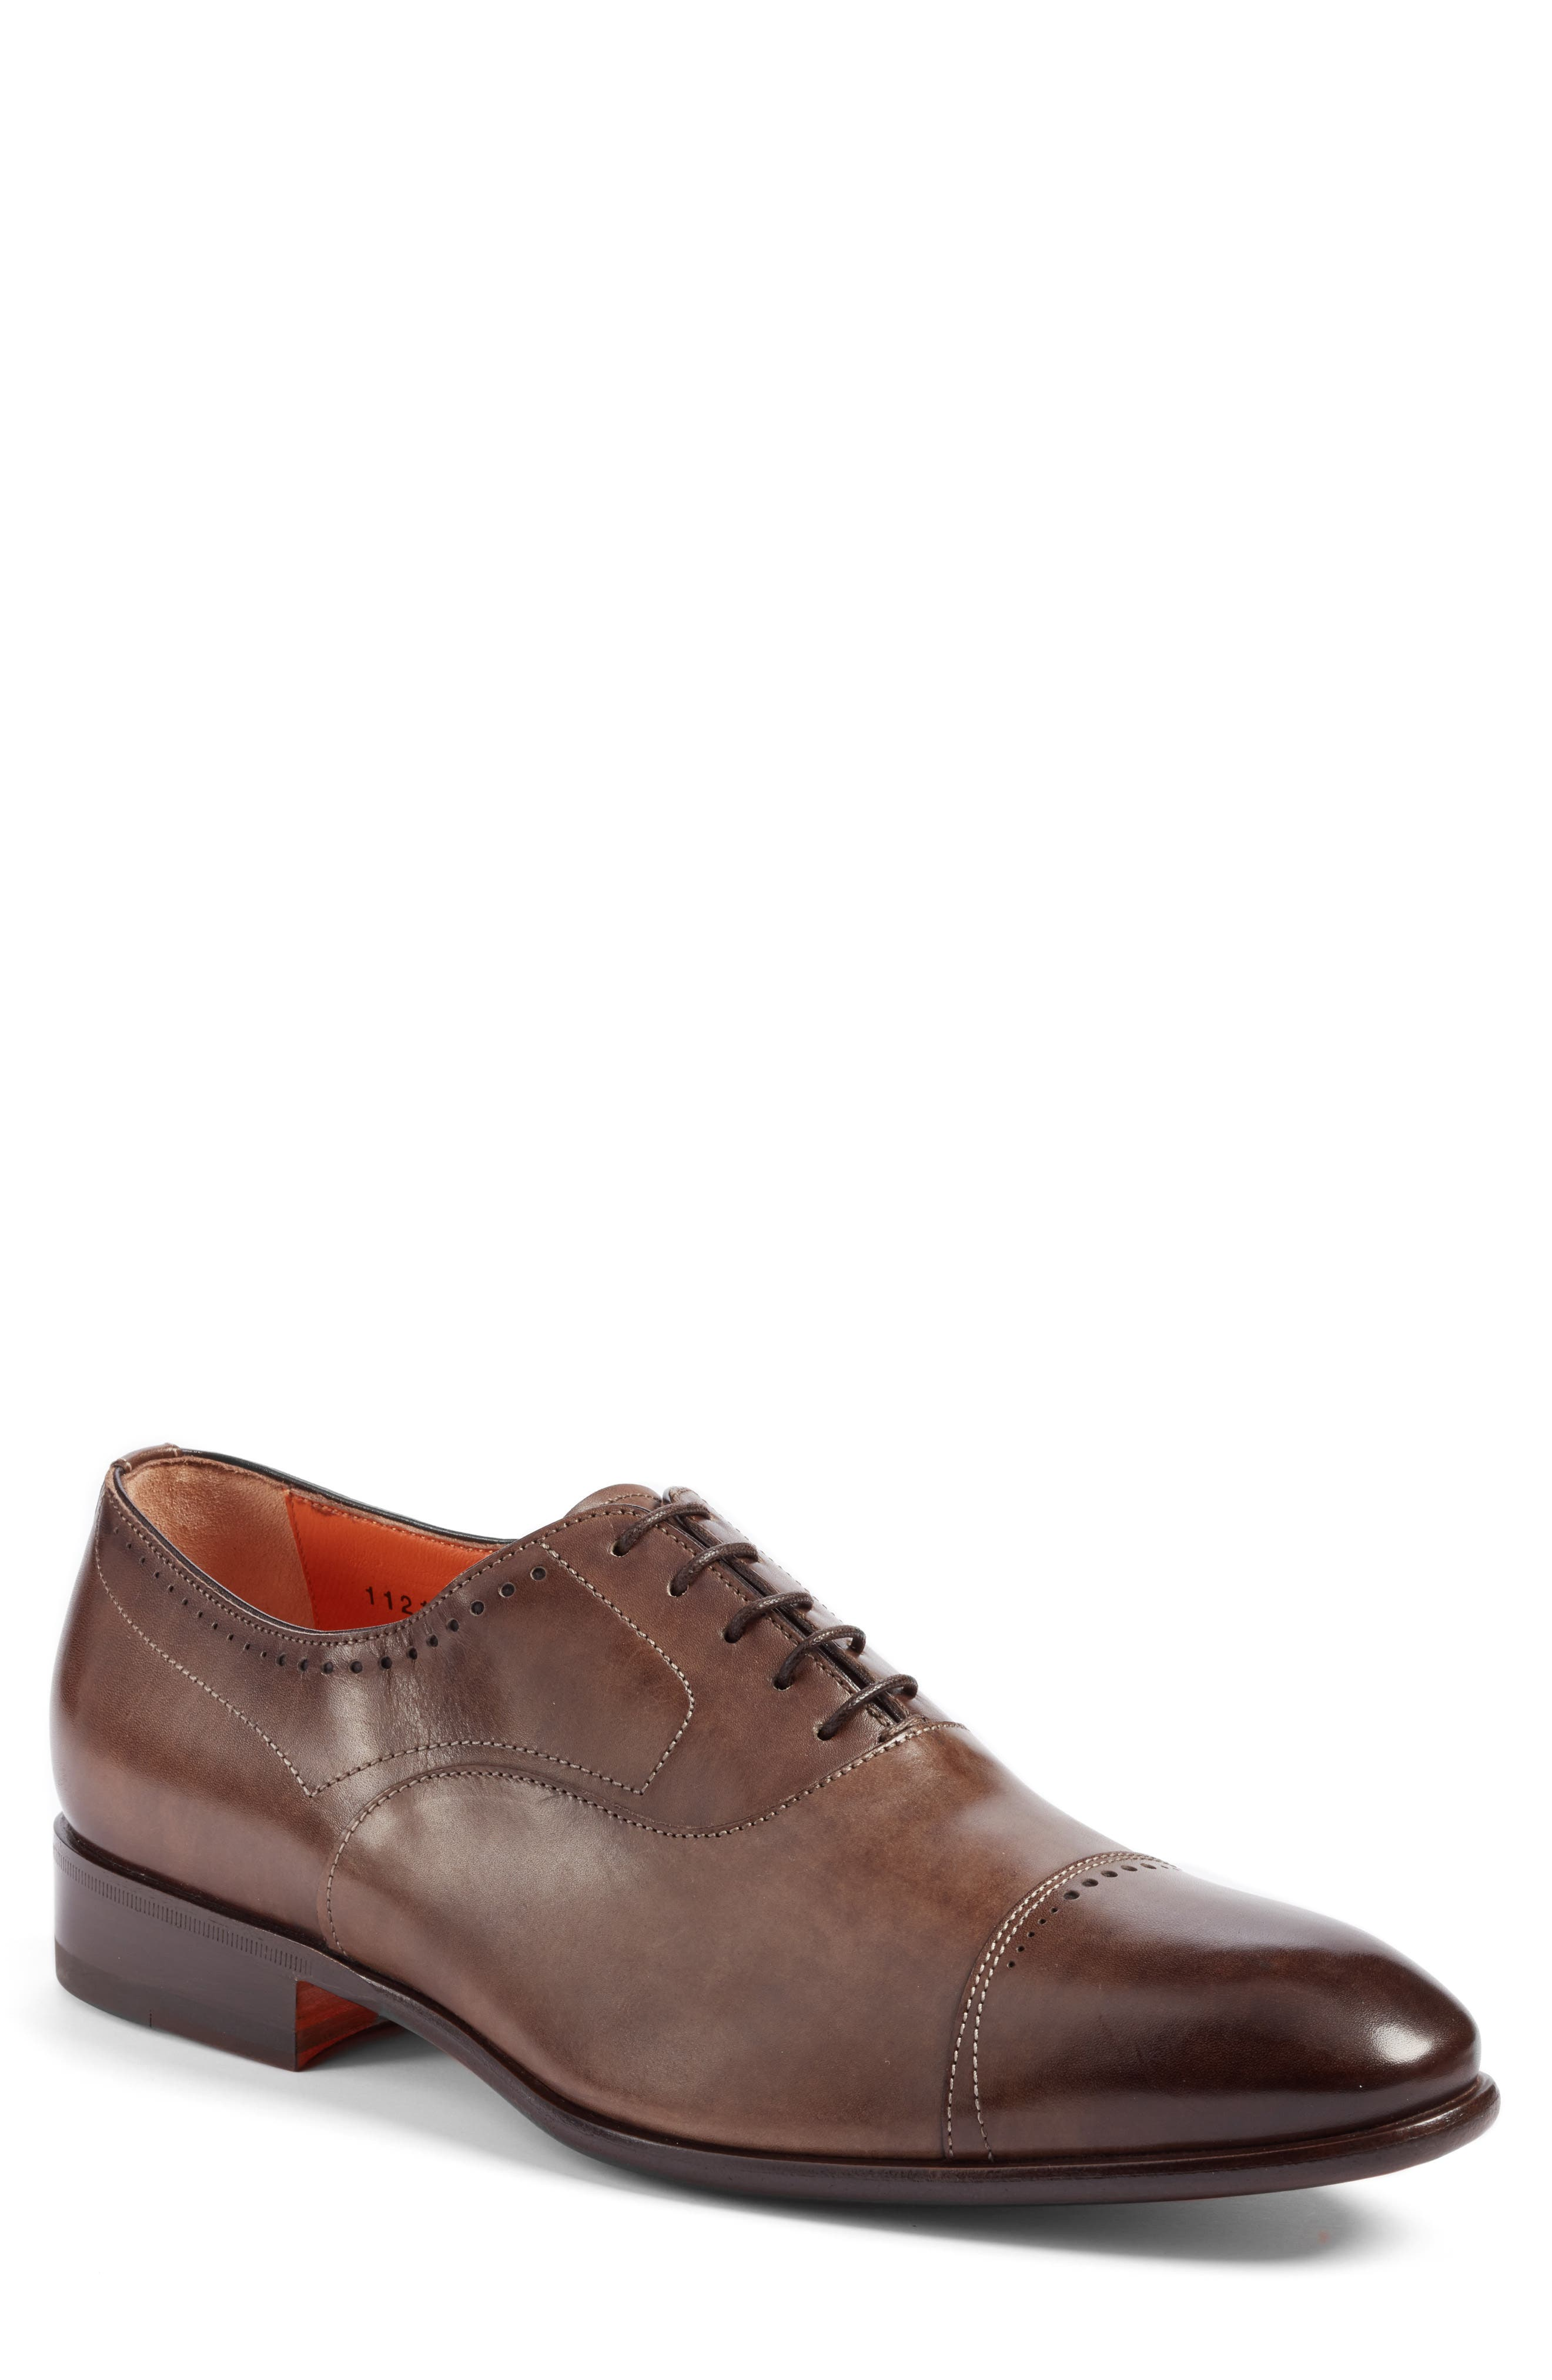 Thurman Cap Toe Oxford,                             Main thumbnail 1, color,                             Dark Brown Leather